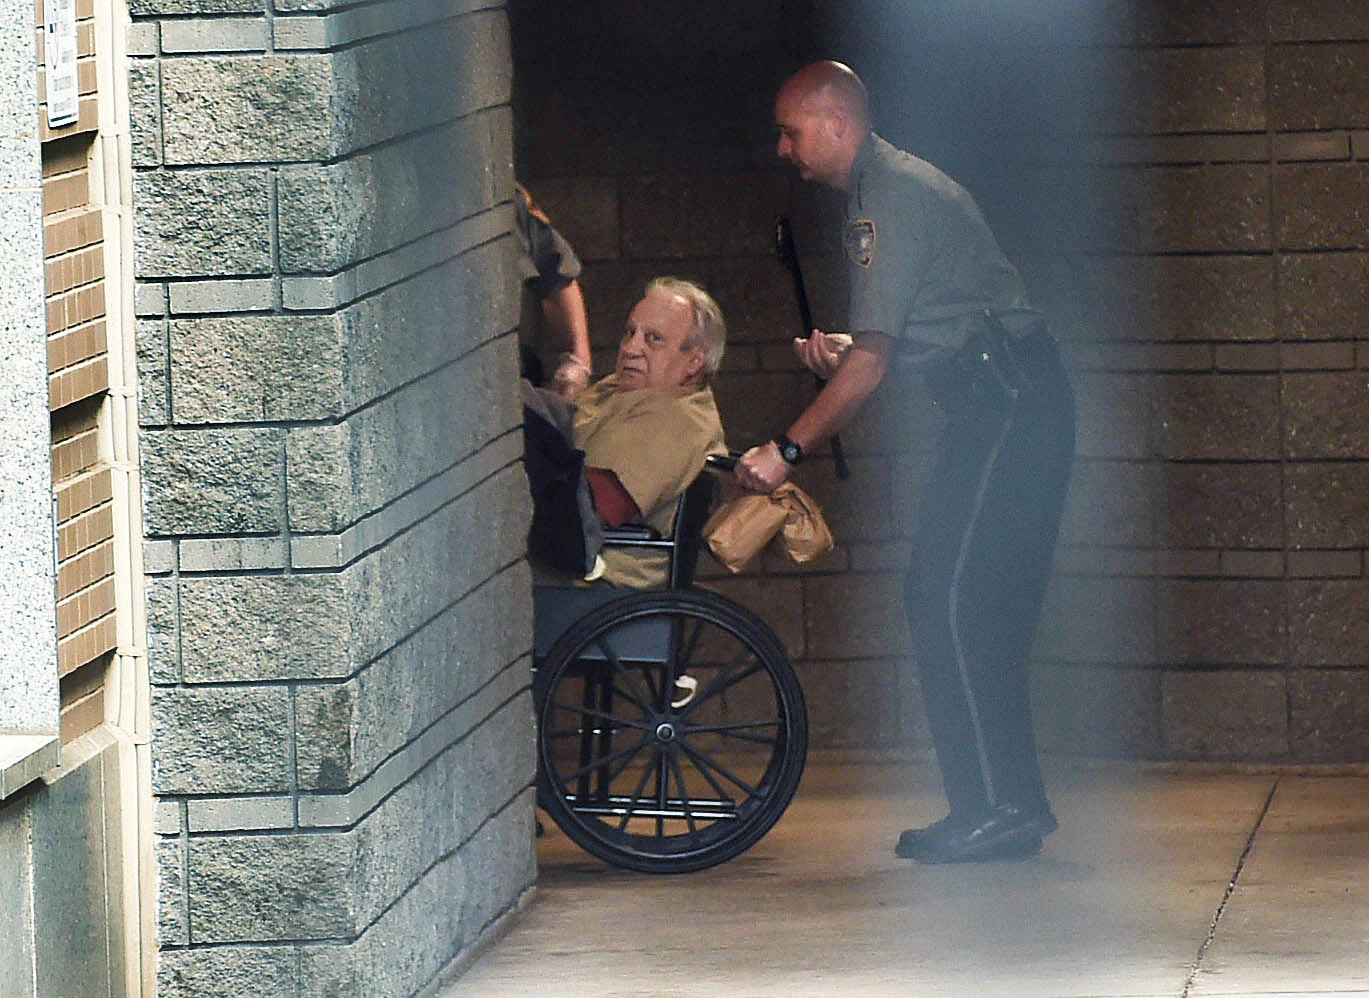 FILE - In this April 20, 2015 file photo, Robert Gentile is brought into the federal courthouse in a wheelchair for a continuation of a hearing in Hartford, Conn. Gentile, a reputed Connecticut mobster who authorities say is the last surviving person of interest in the largest art heist in U.S. history has agreed to plead guilty to unrelated weapons charges. The Hartford Courant reports the plea agreement was reached Tuesday, March 28, 2017, in 80-year-old Gentile